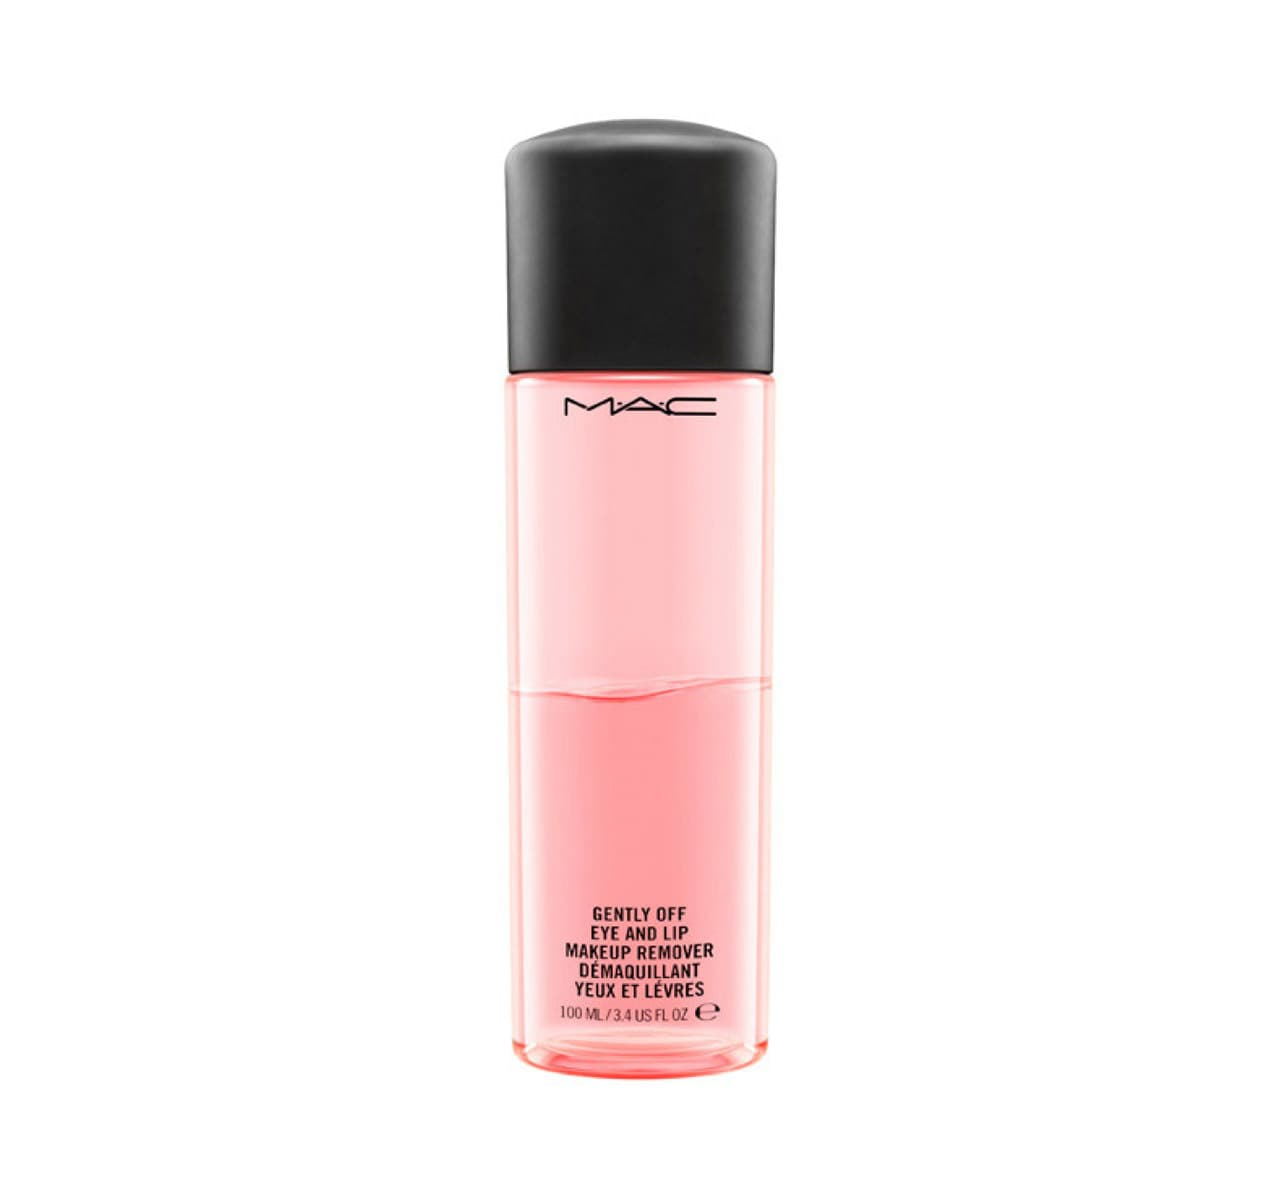 맥 M.A.C Gently Off Eye and Lip Makeup Remover